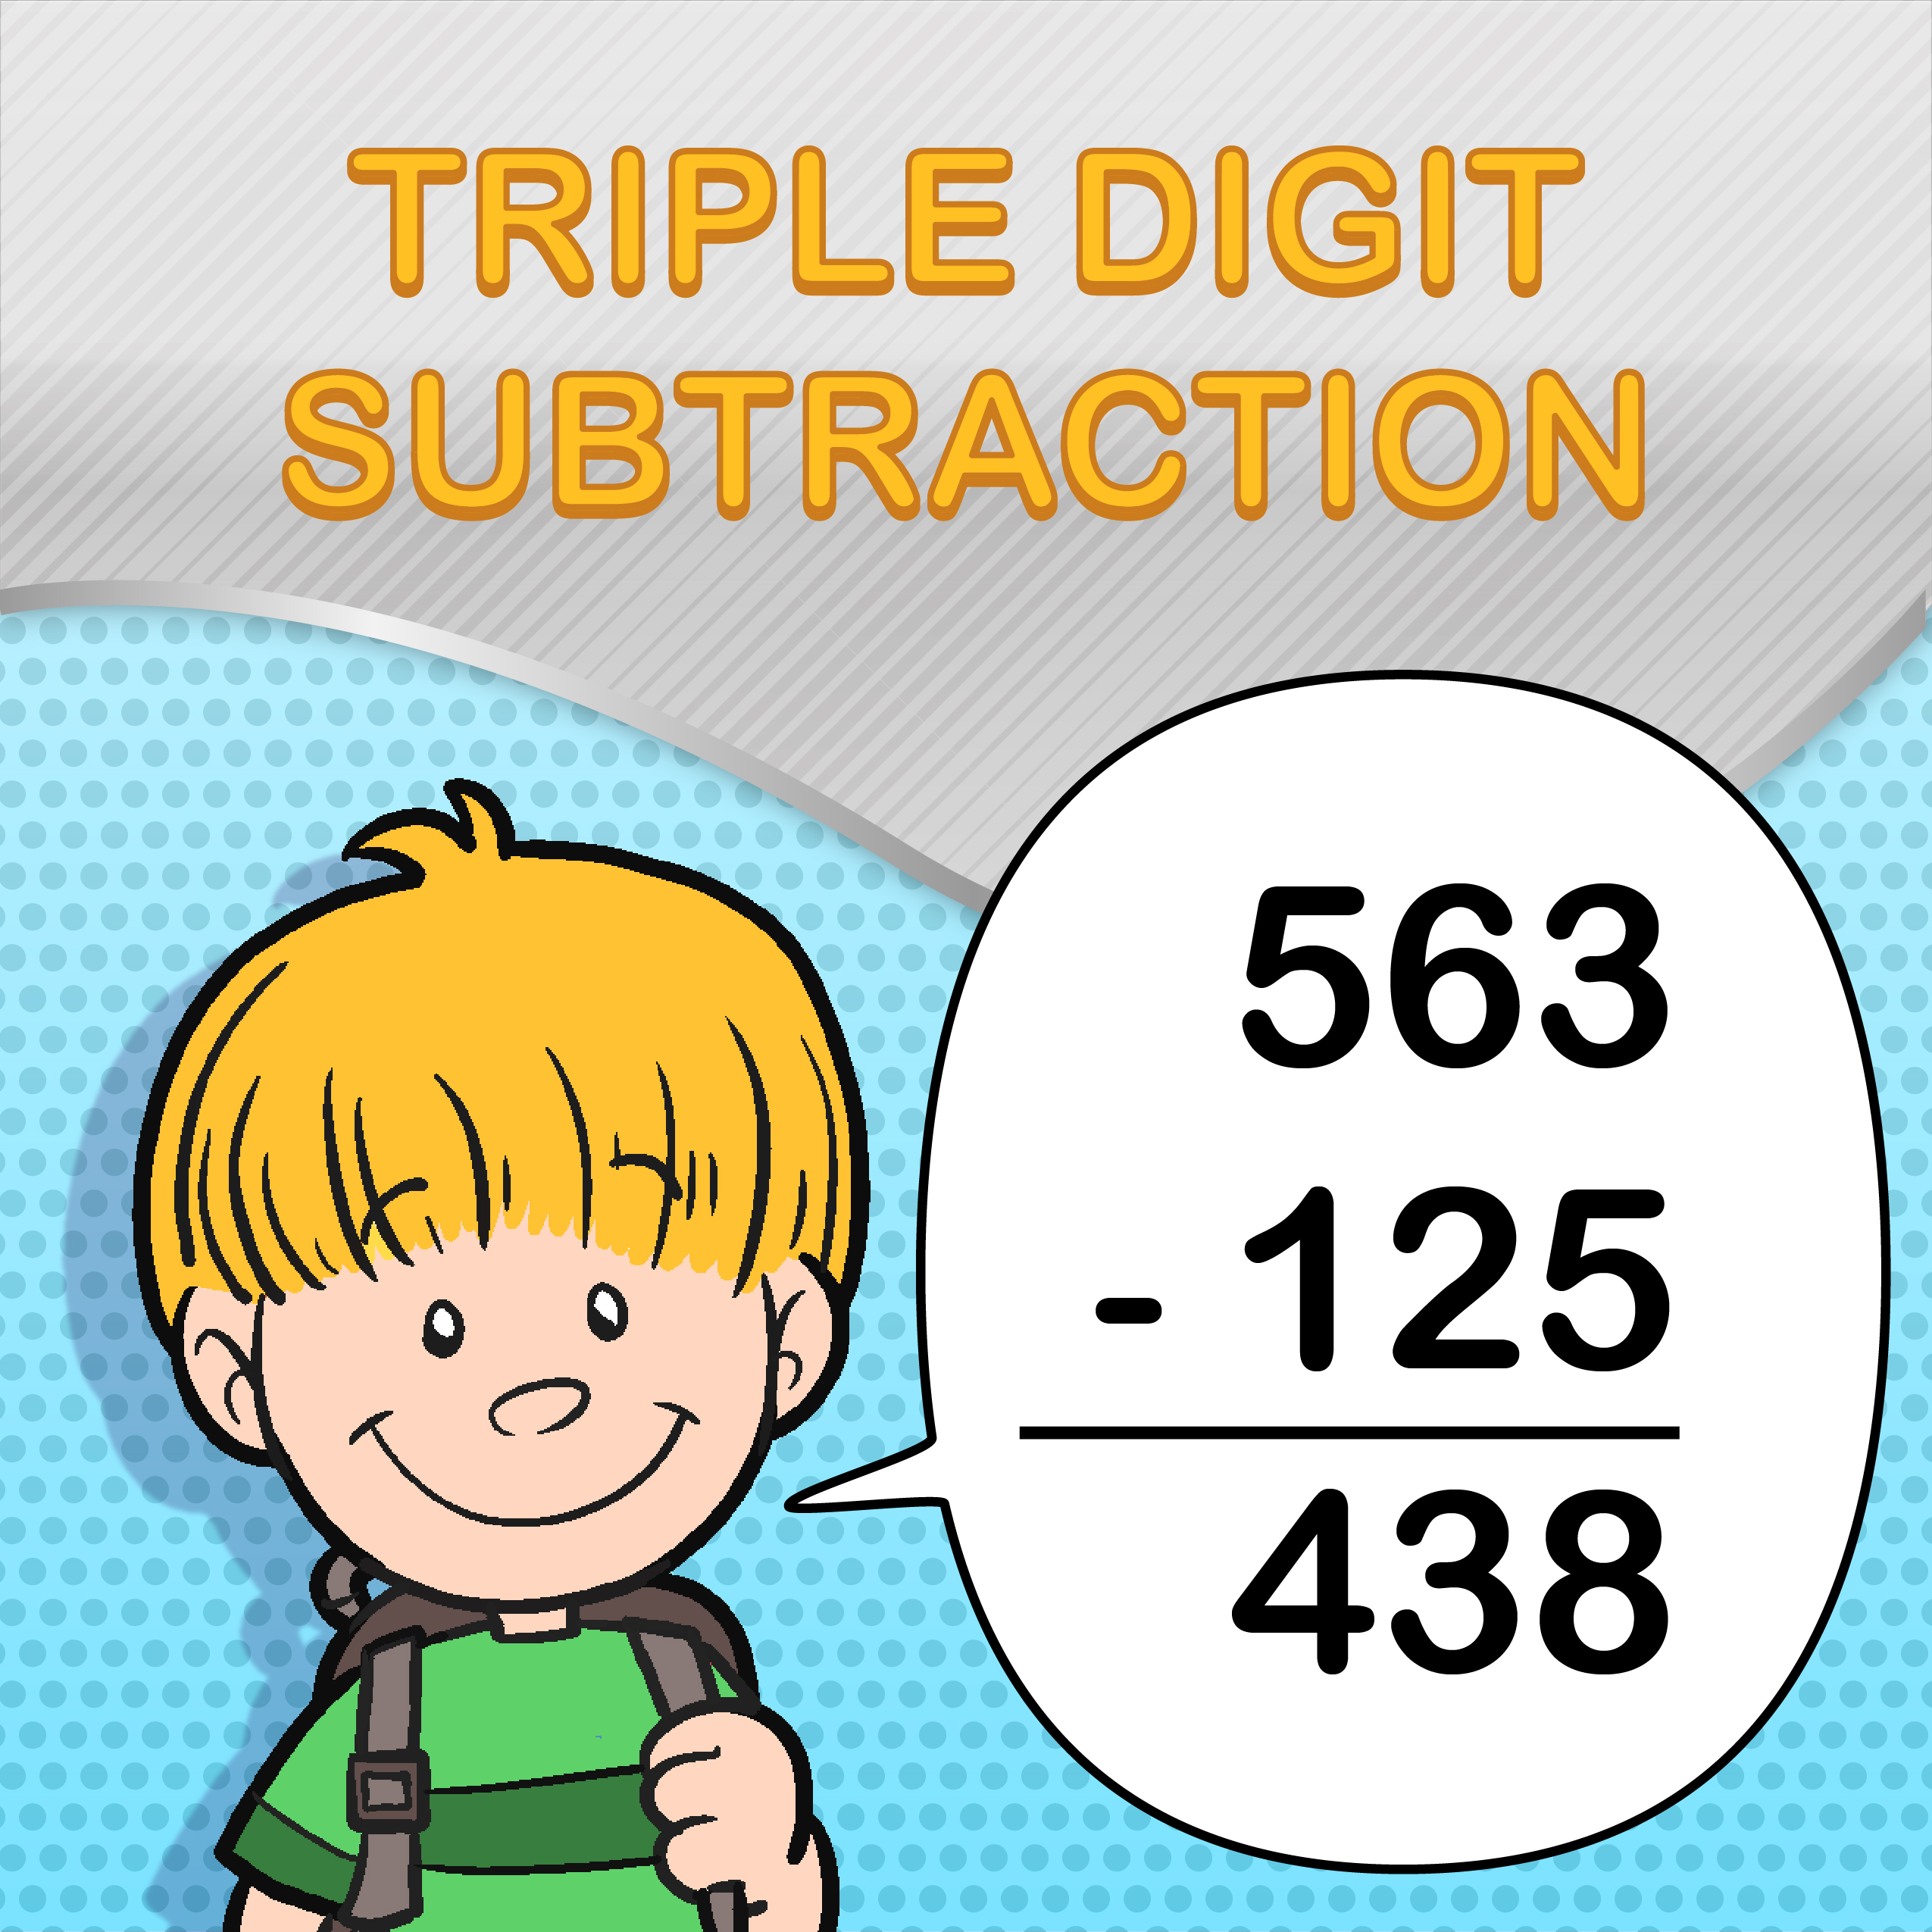 Triple Digit Subtraction Worksheets For Kids